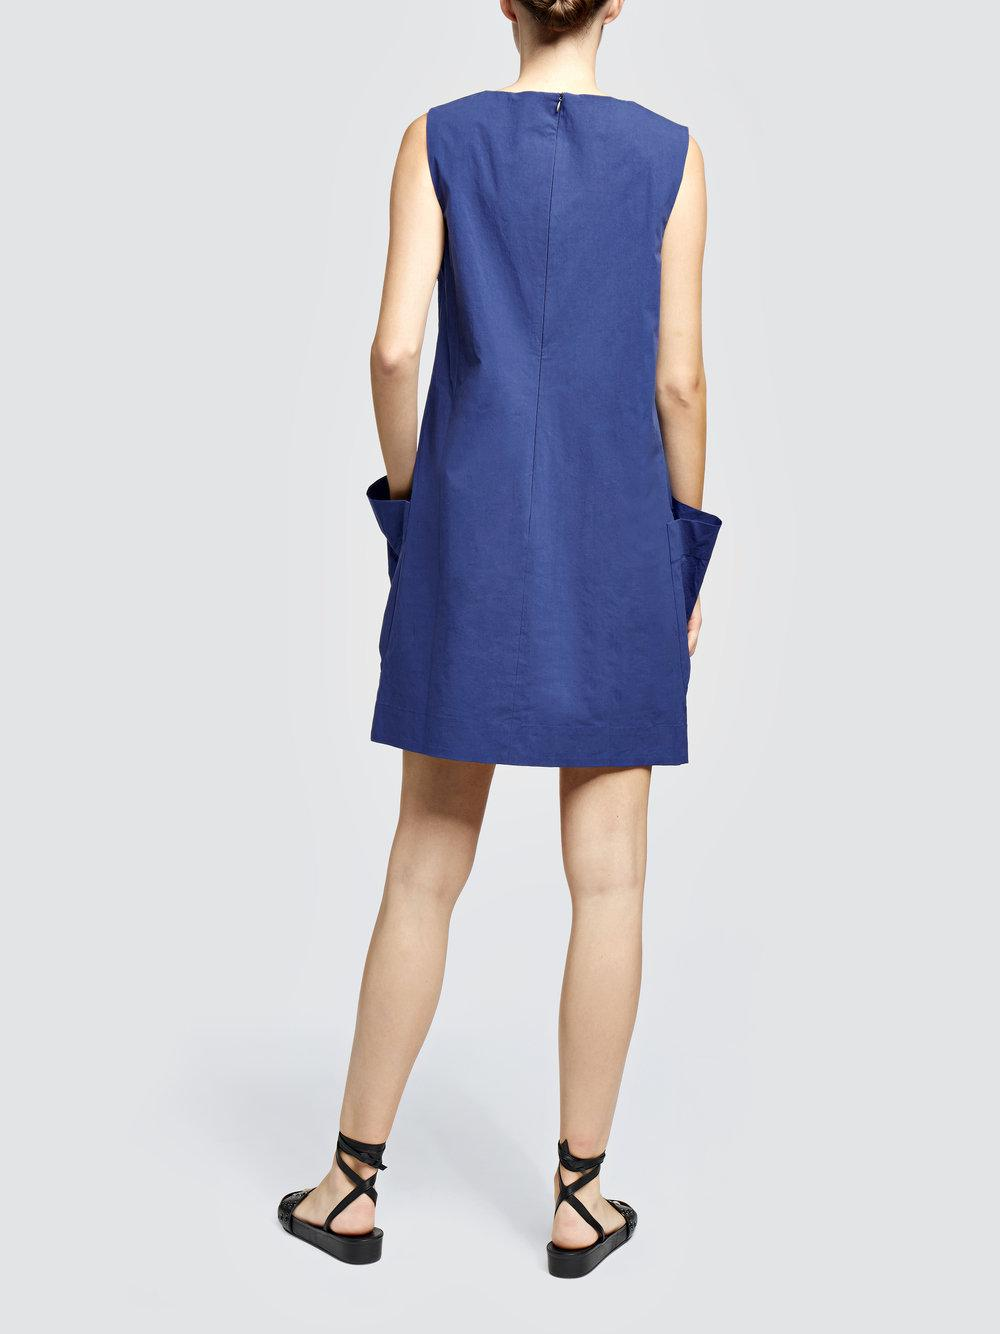 sporty poplin dress - Blue Tomas Maier Shop Your Own With Paypal Free Shipping sBmh4